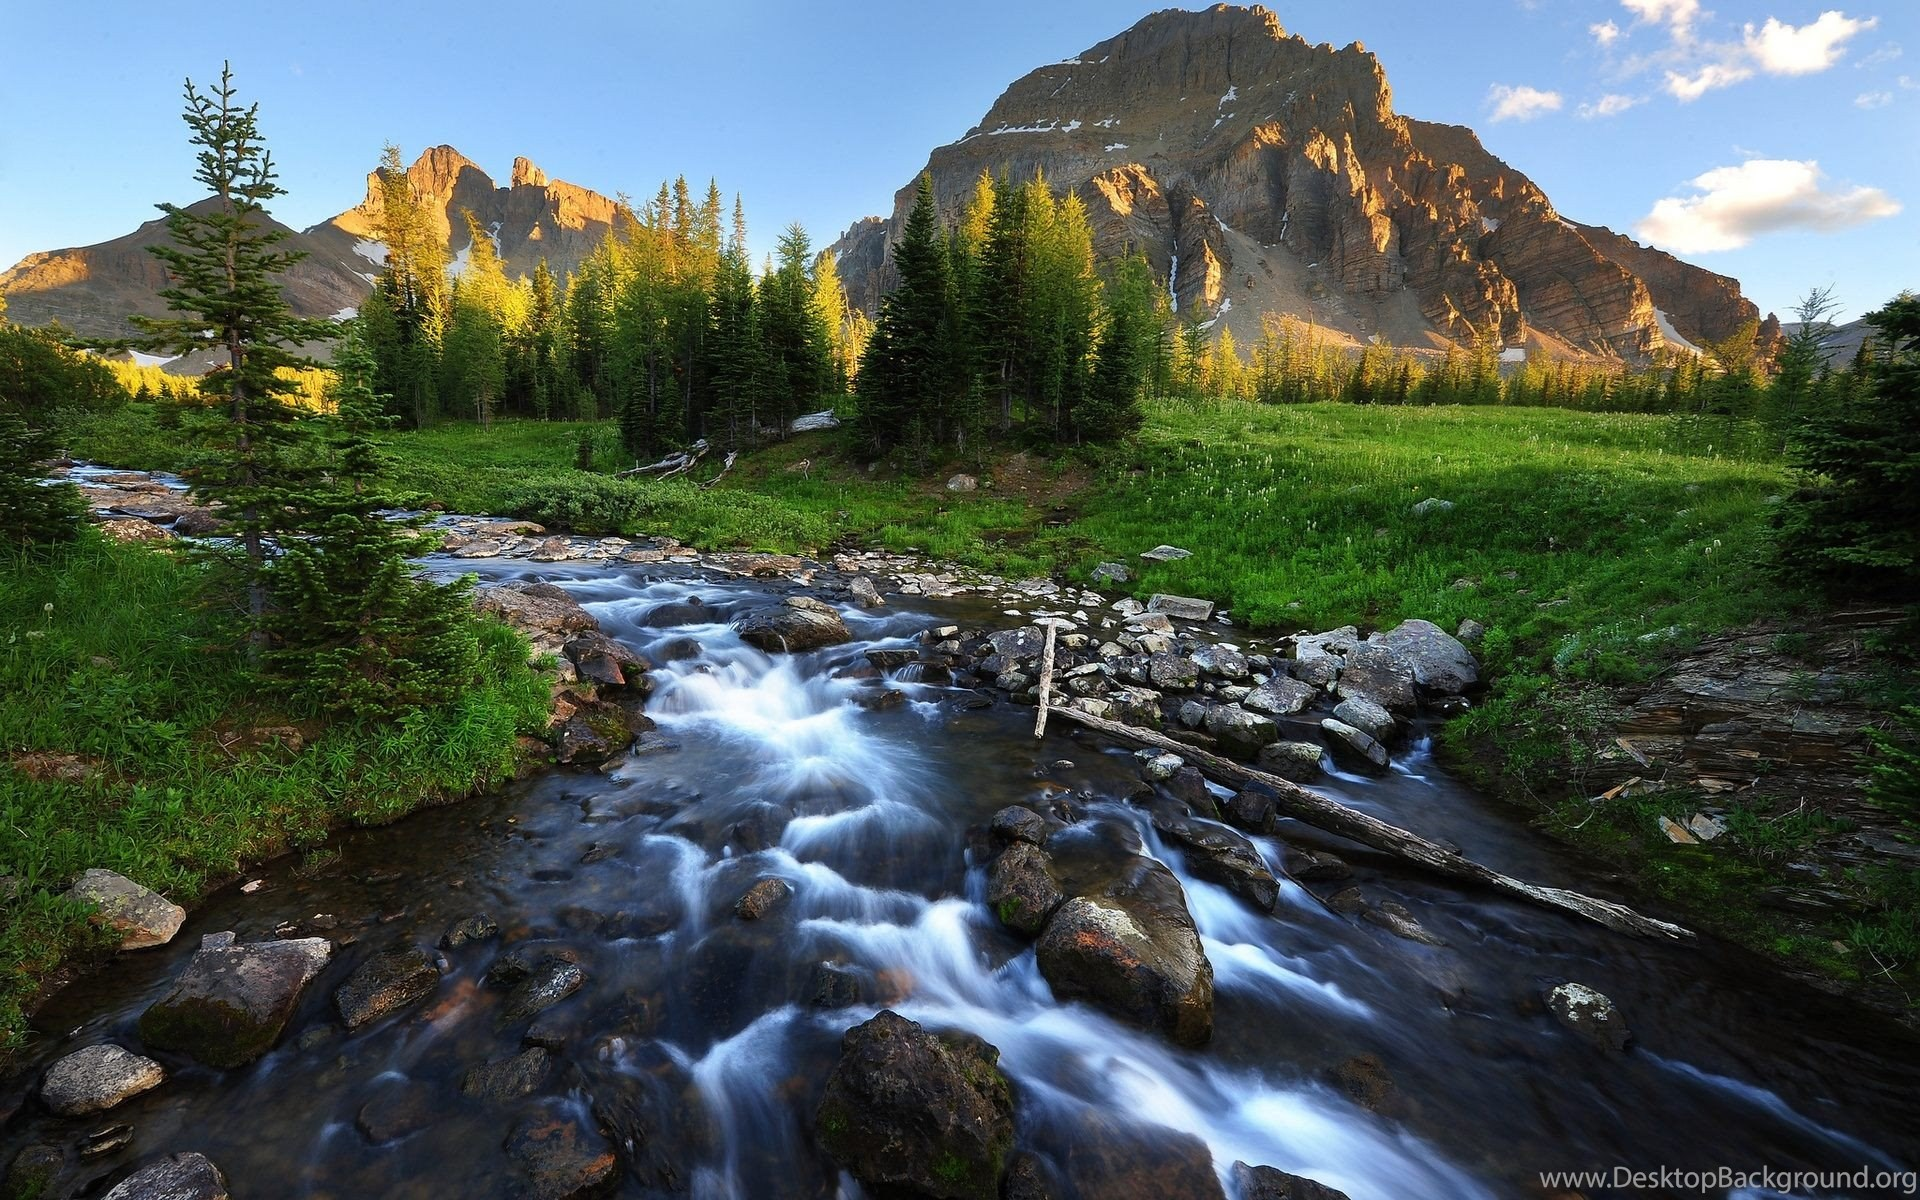 Mountain stream beautiful scenery wallpapers hd download - Hd photos of scenery ...